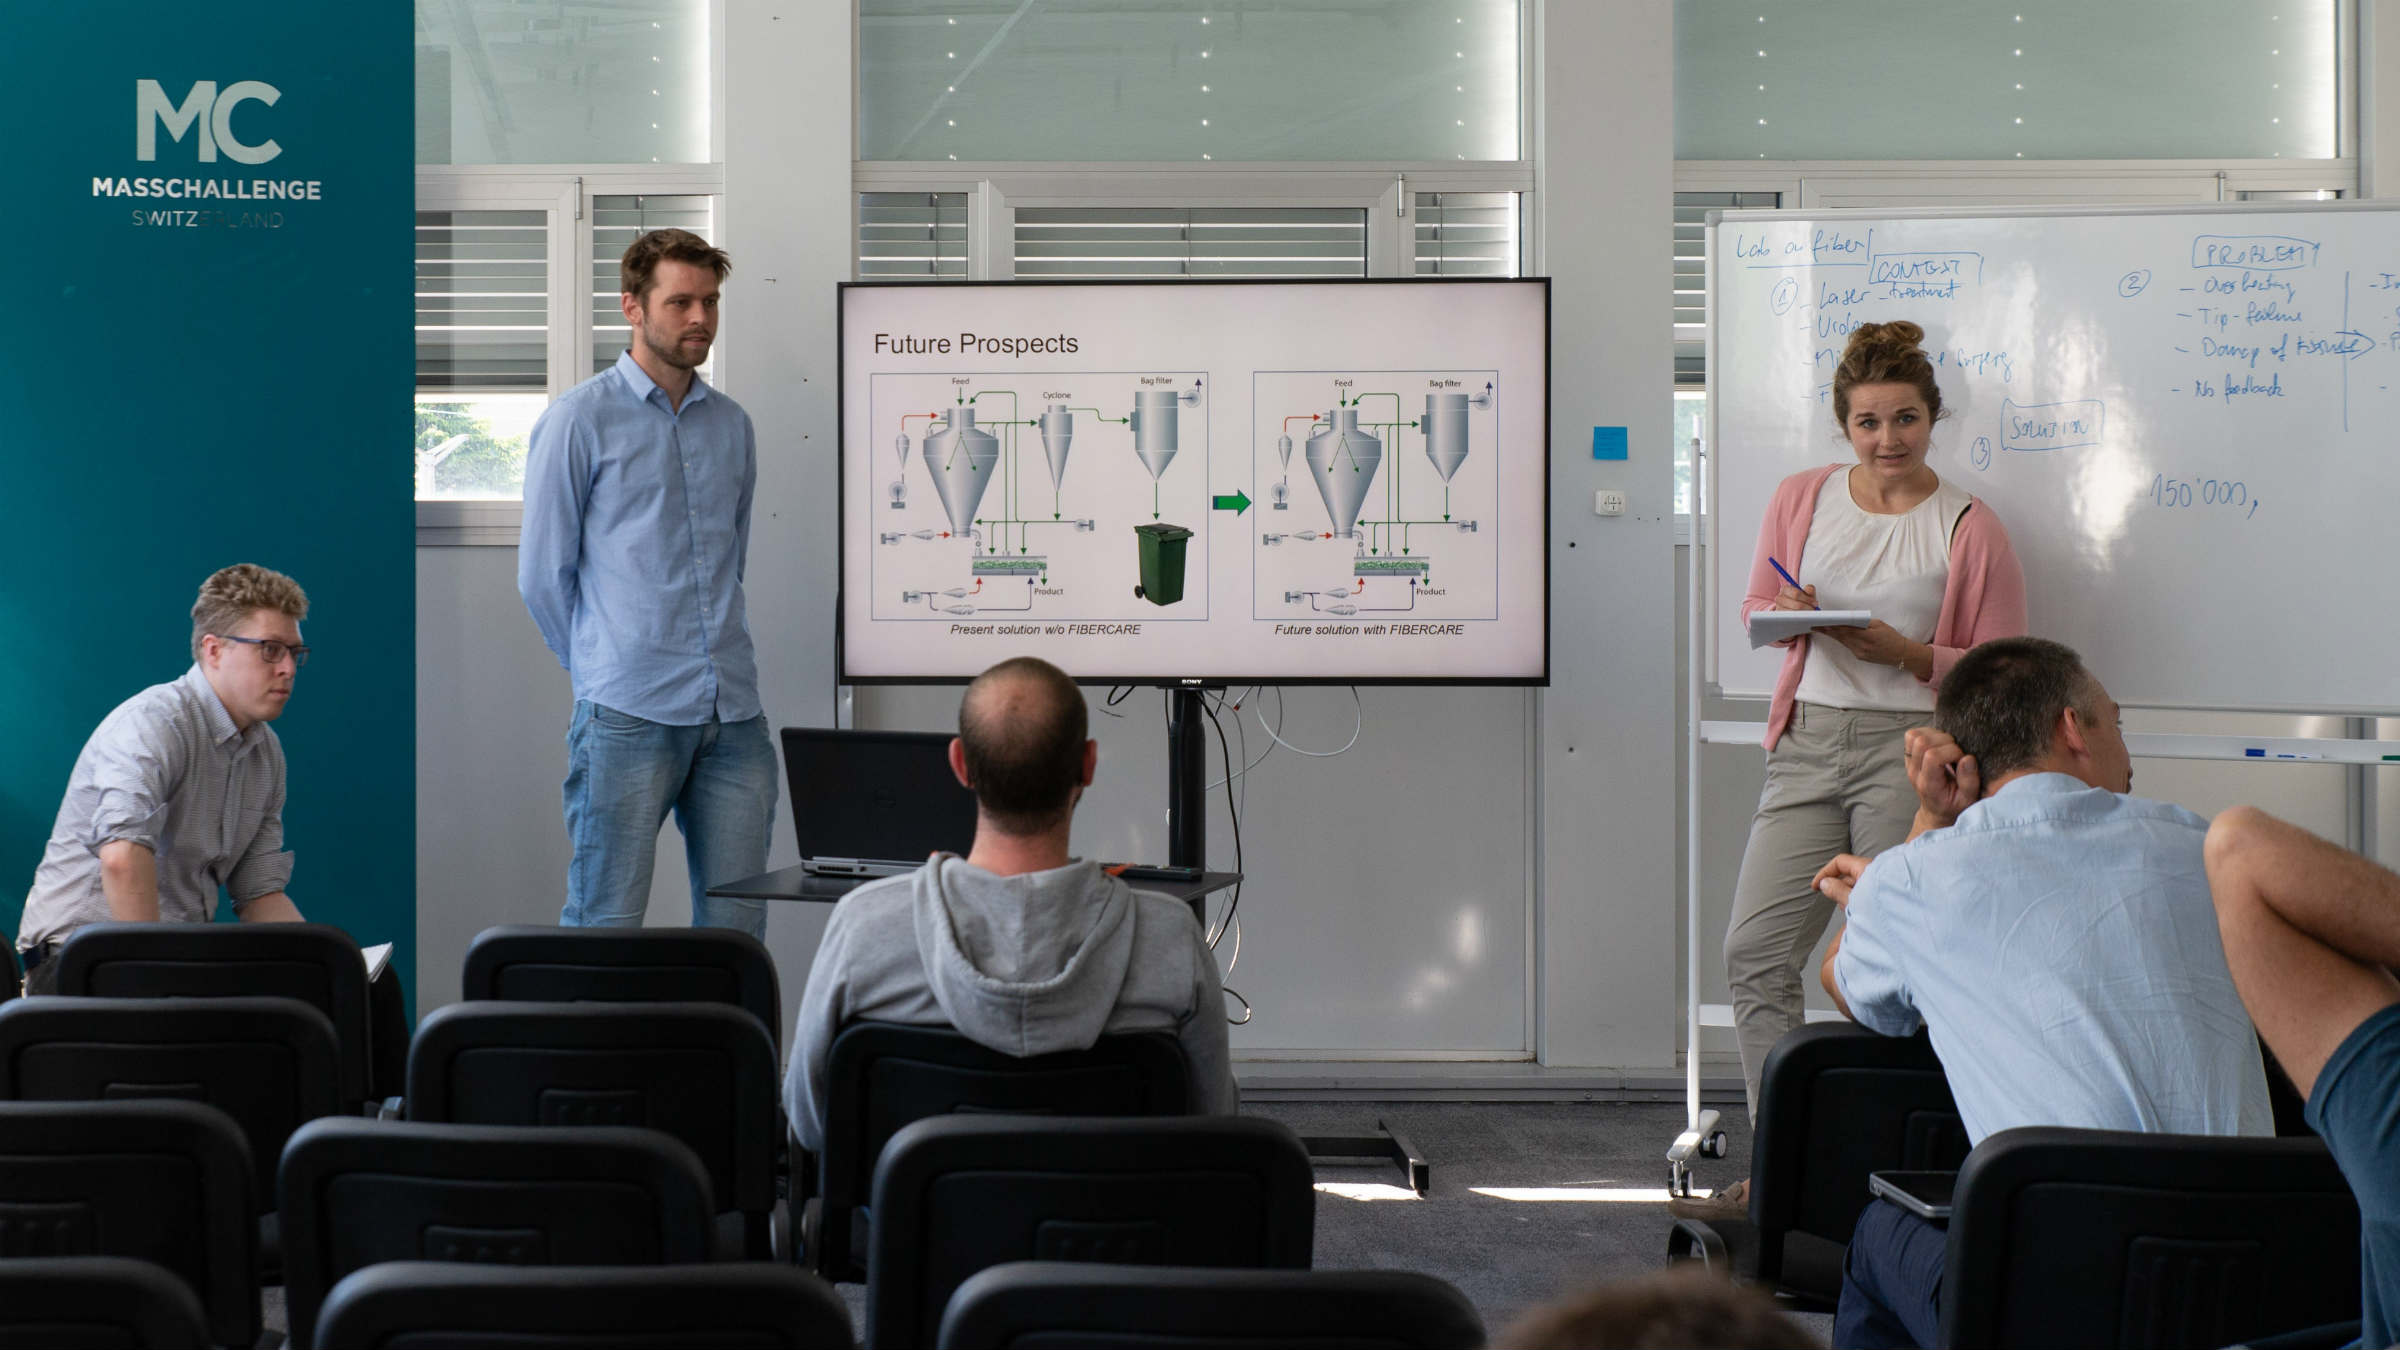 A GEA team gains valuable experience presenting its own idea for a bag filter made of natural materials, MassChallenge Switzerland, 2017 (l to r: Todd Siwik, Sikker Rosendal (GEA Drying), Maddie Drewiske (GEA Dairy)).